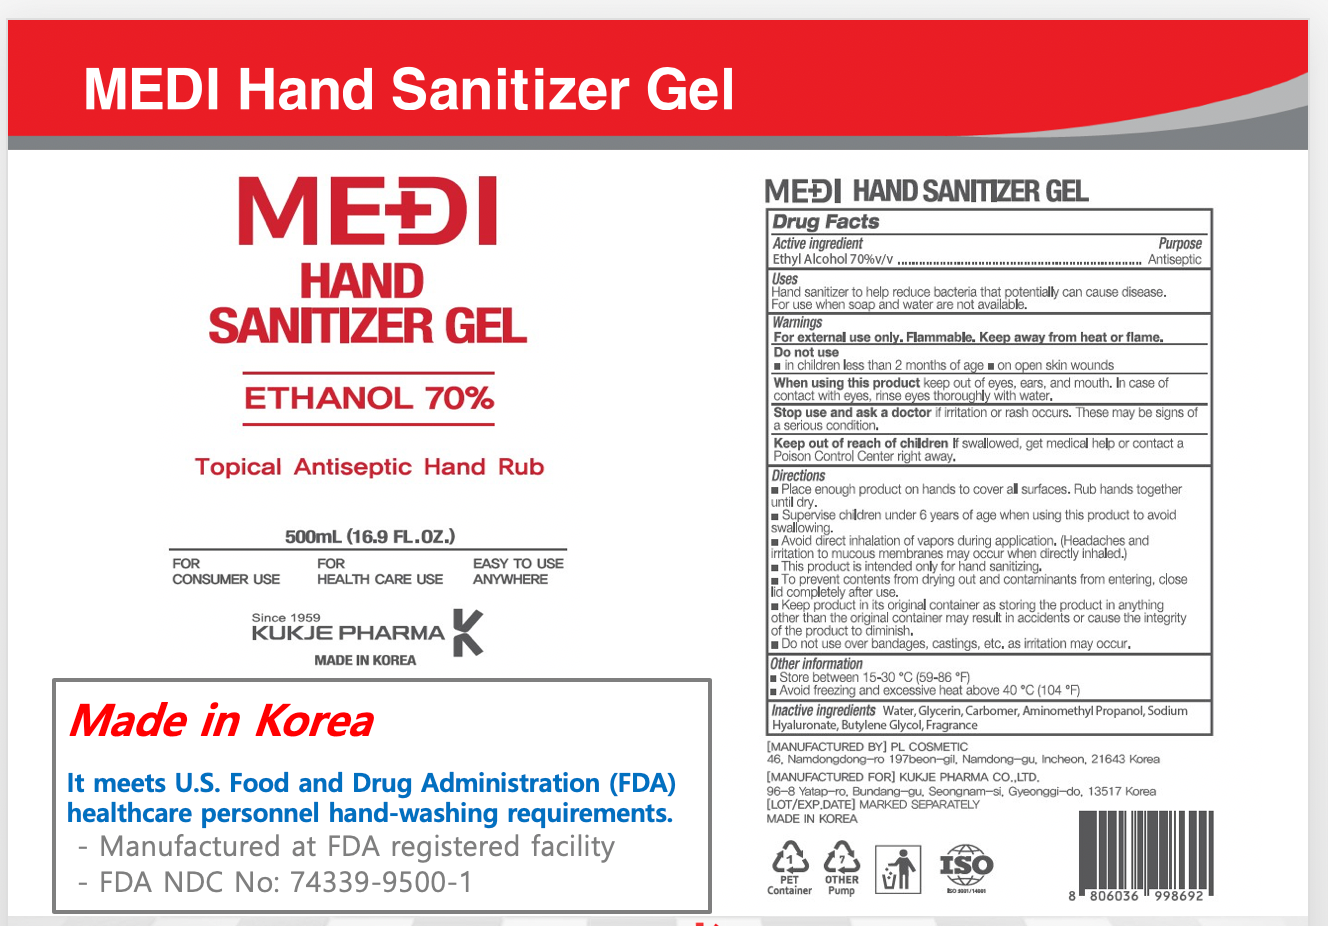 MEDI Hand Sanitizer Gel (17oz / 500ml)